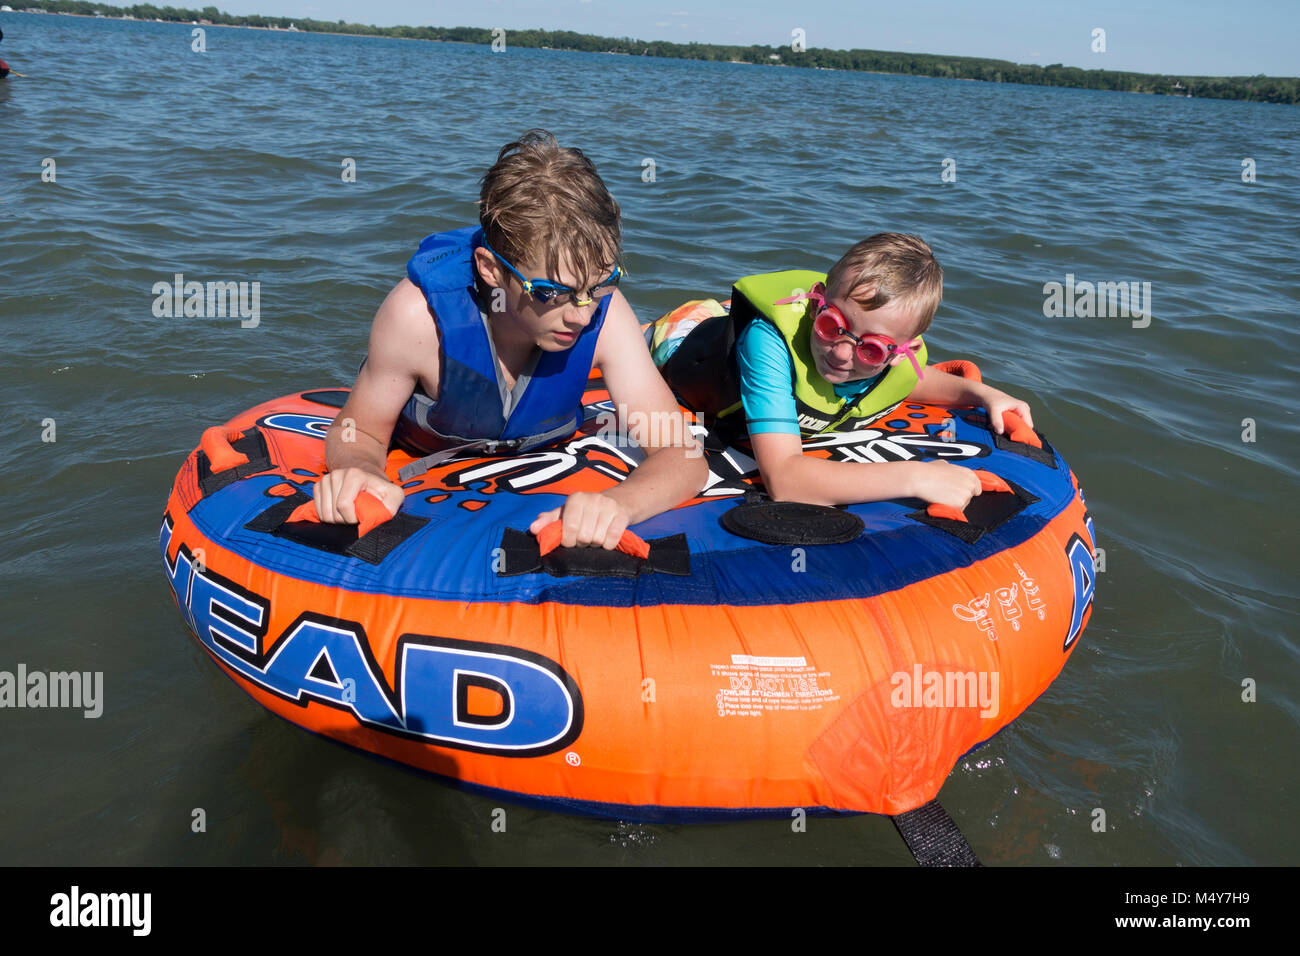 Two boys wearing goggles and life vests hanging on to their water donut waiting for the ride of their lives. Clitherall - Stock Image